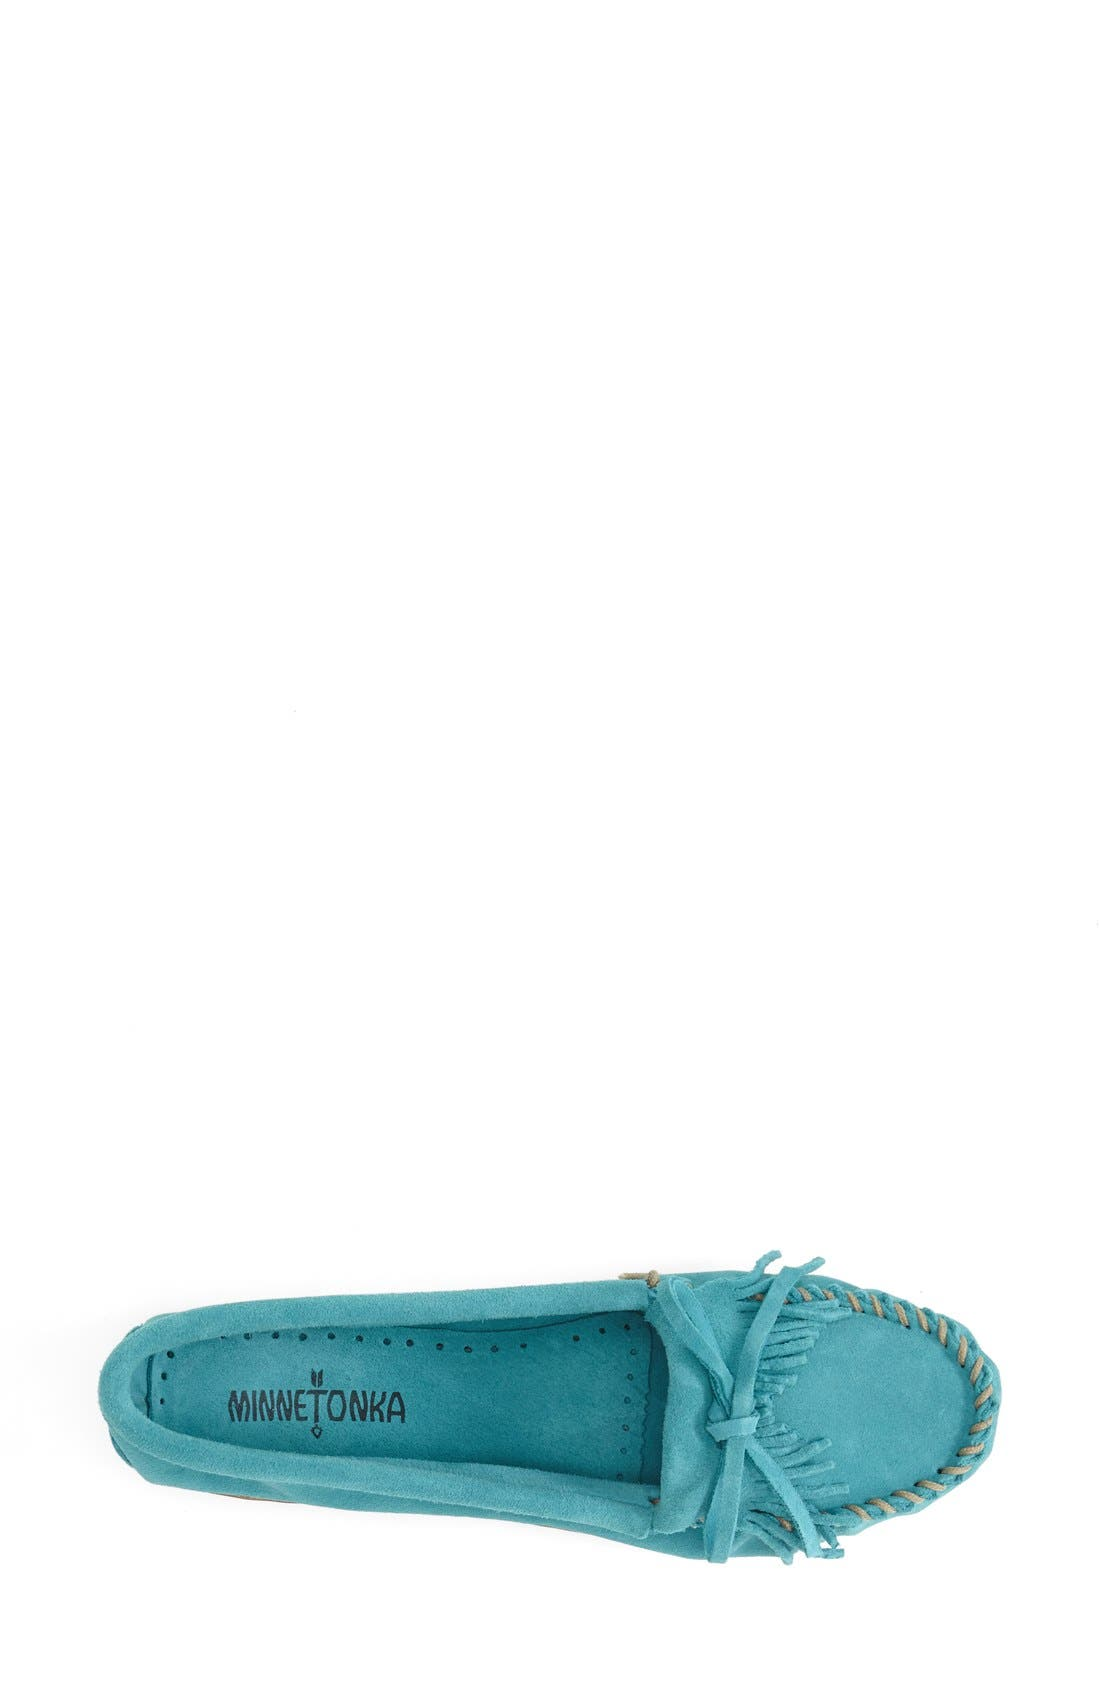 MINNETONKA, 'Kilty' Suede Moccasin, Alternate thumbnail 4, color, TURQUOISE